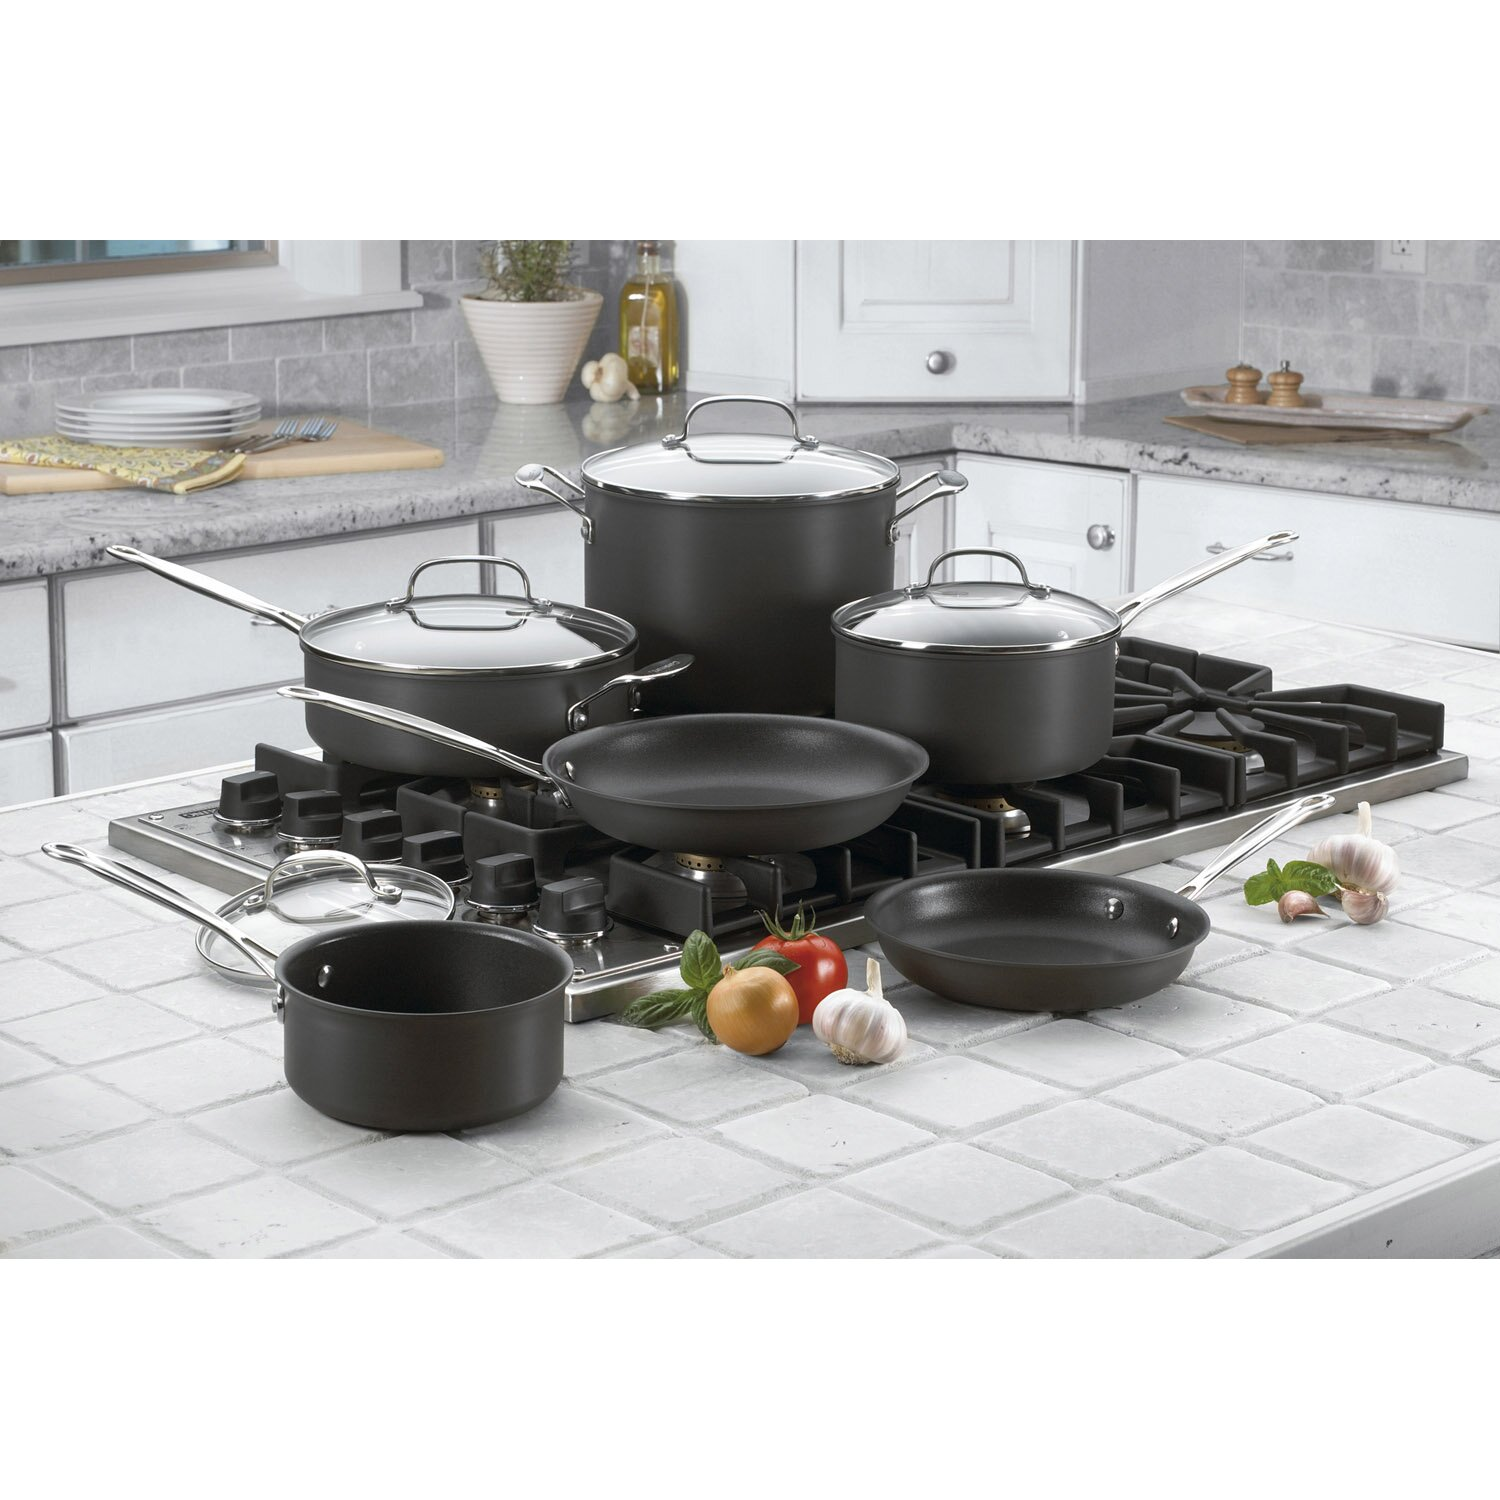 Non Stick Kitchen Appliances Cuisinart Chefs Classic Nonstick Hard Anodized 10 Piece Cookware